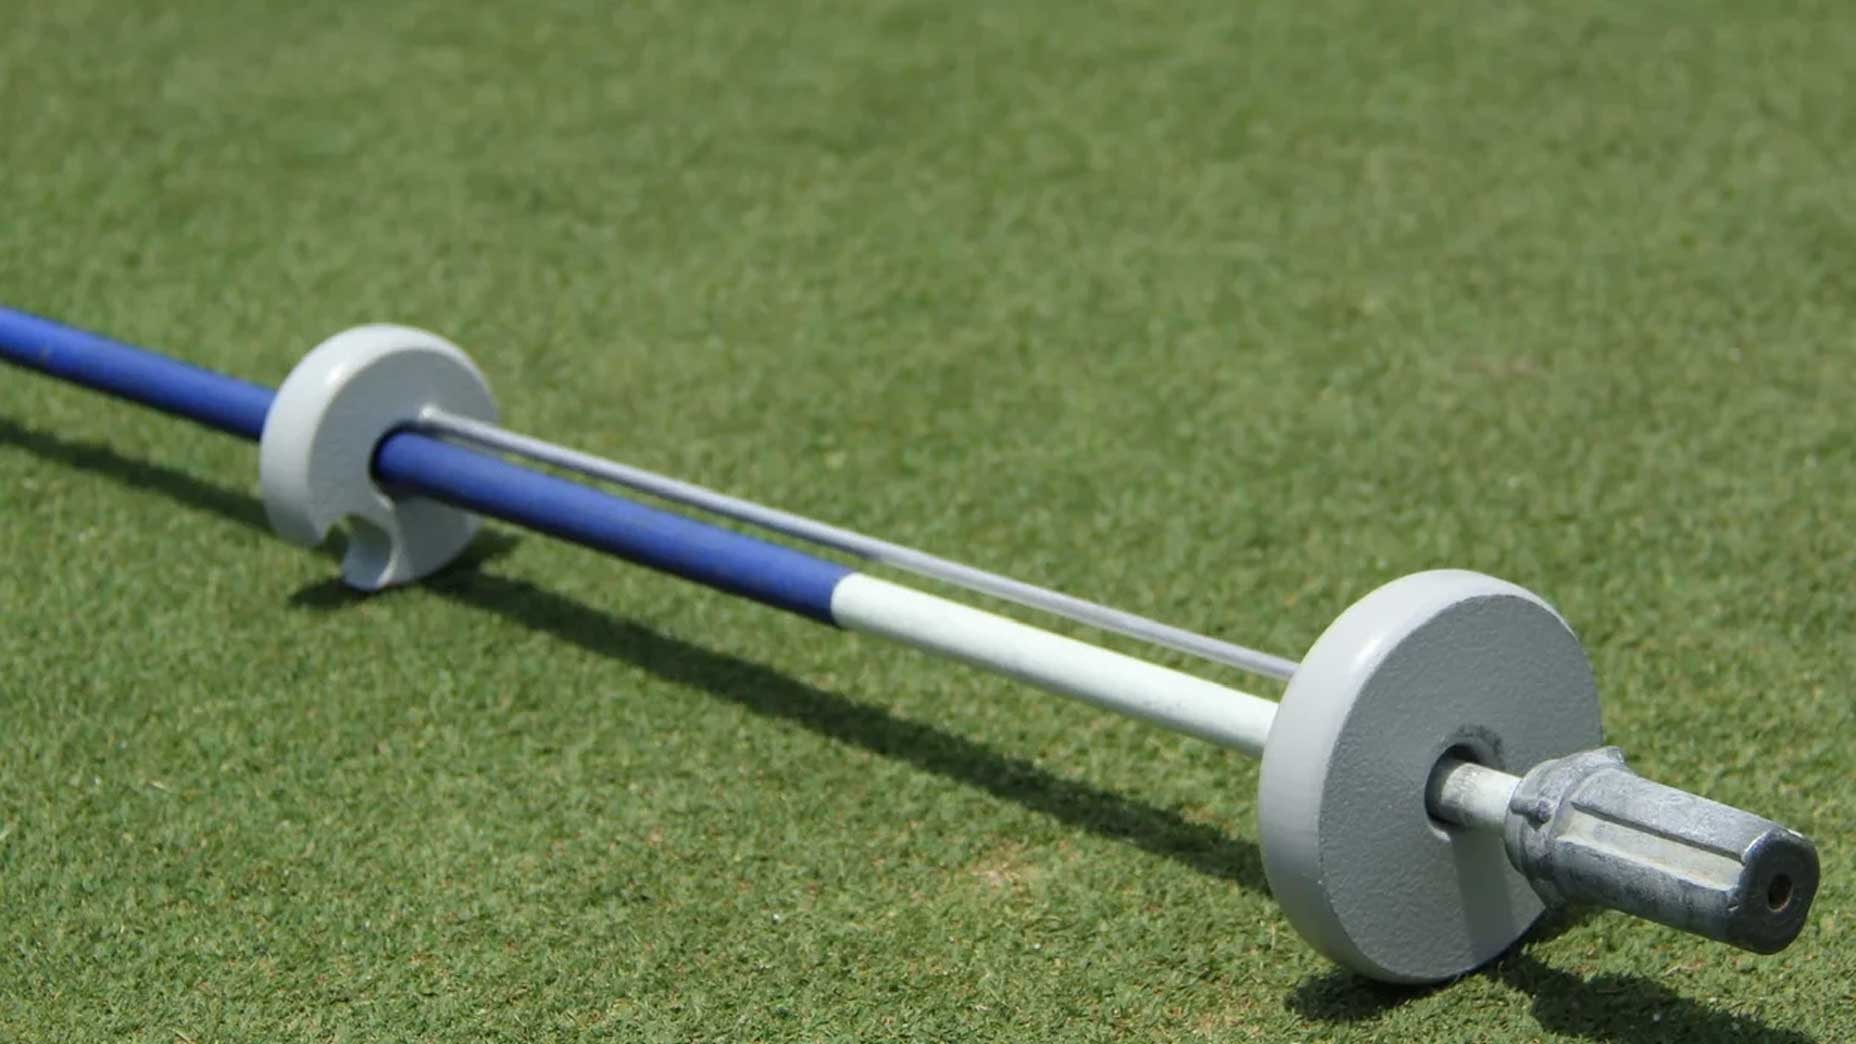 an example of the Putts-Up device on a flagstick